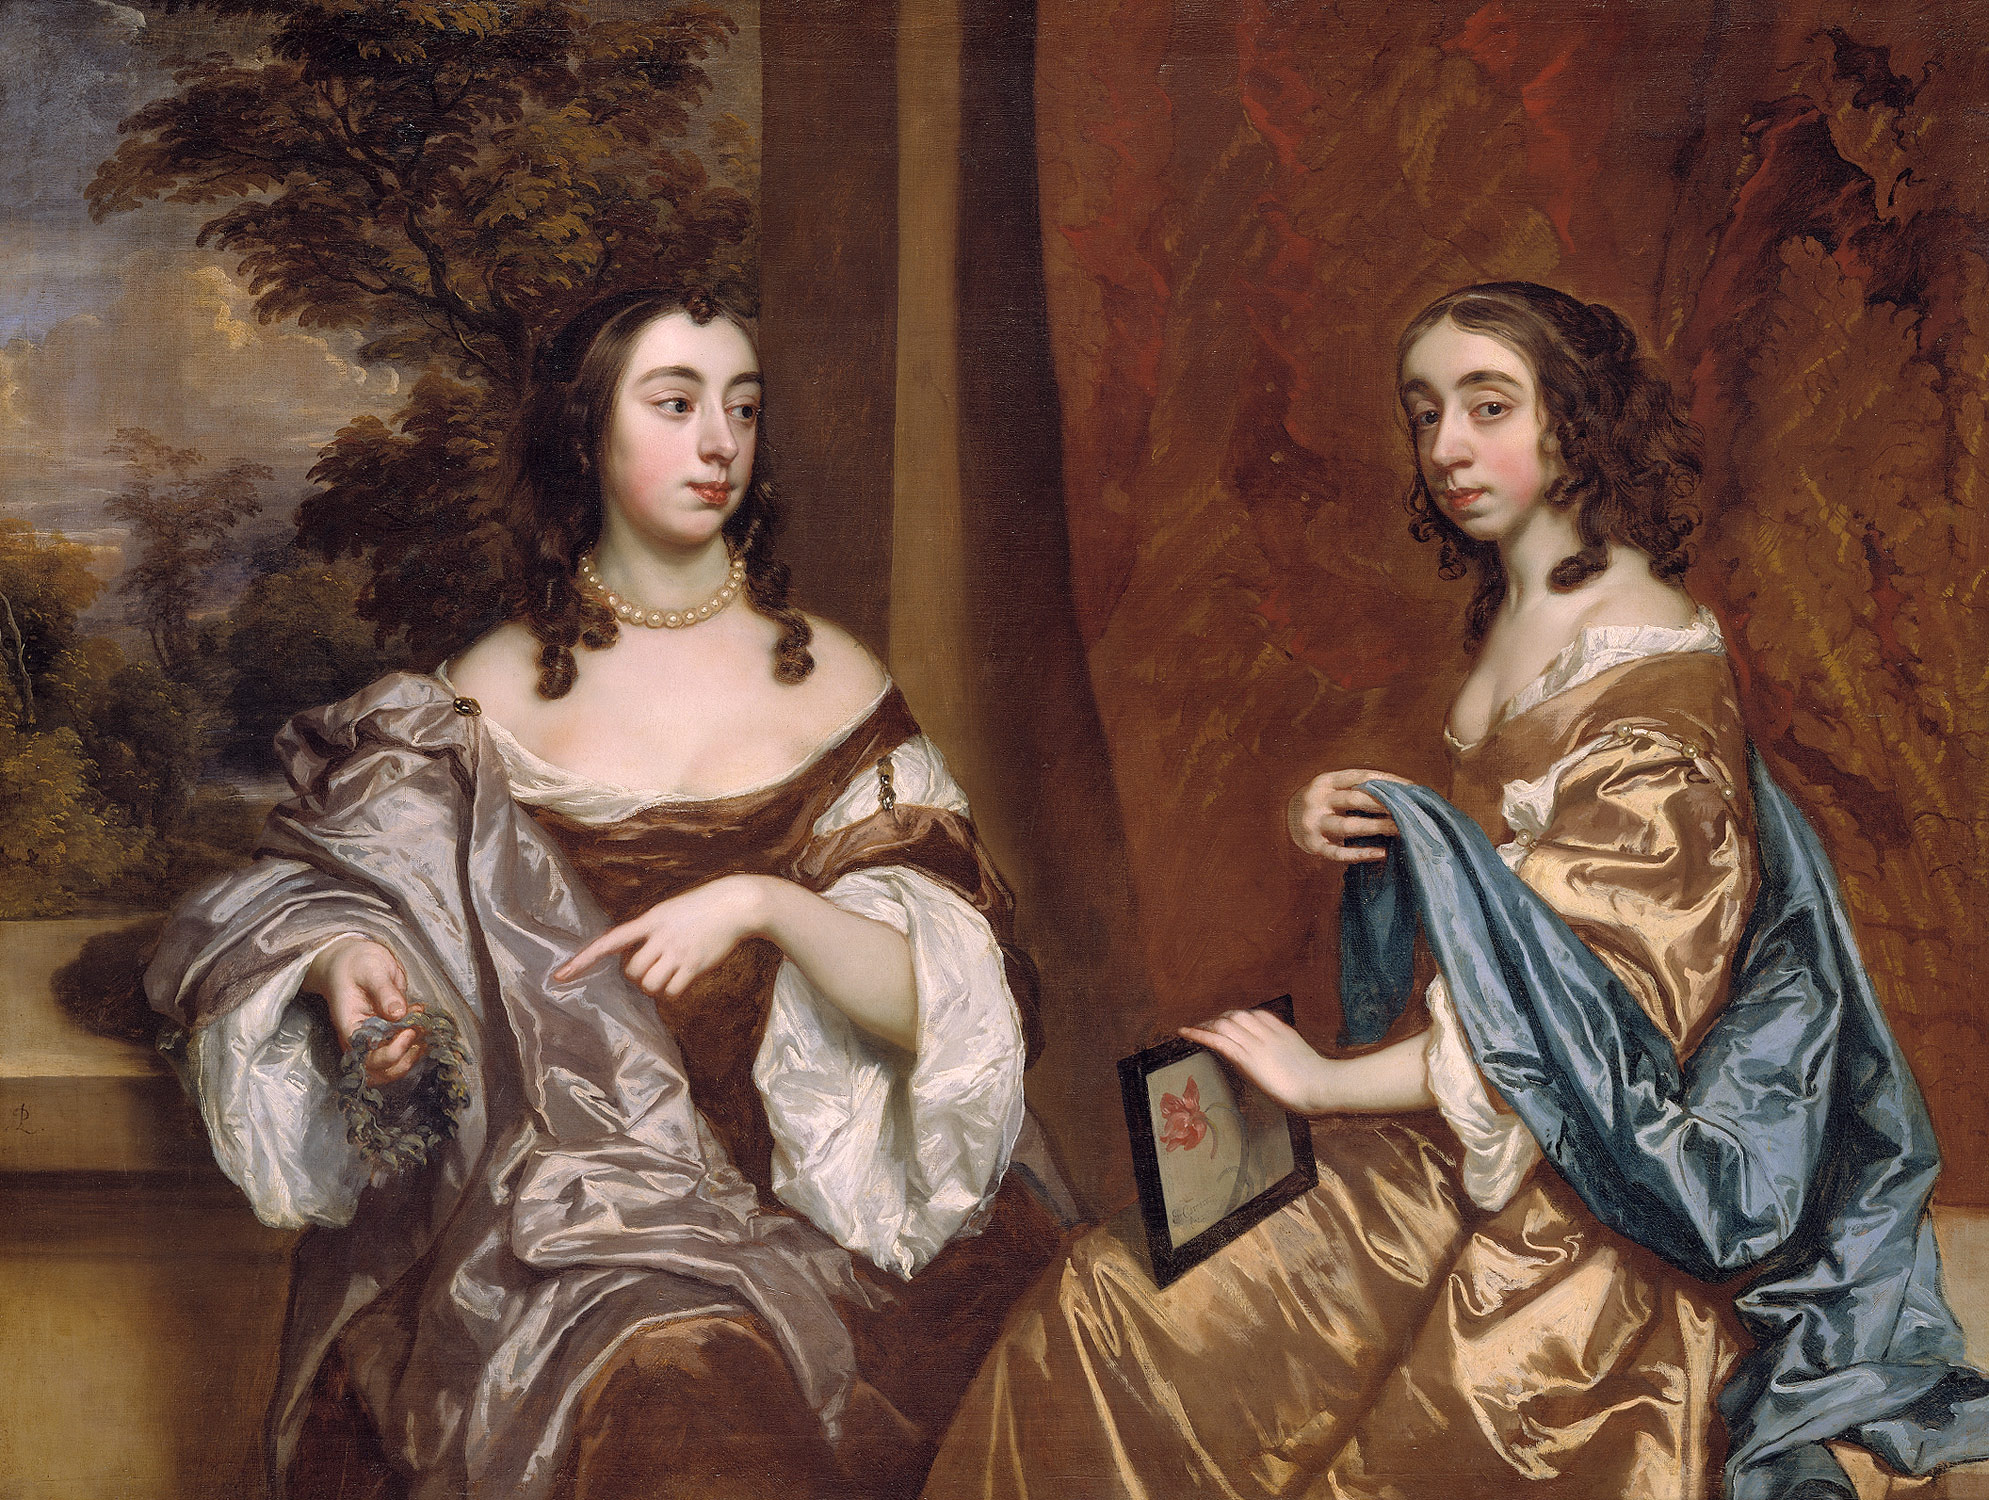 Mary Capel (1630-1715), Later Duchess of Beaufort, and Her Sister Elizabeth (1633-1678), Countess of Carnarvon